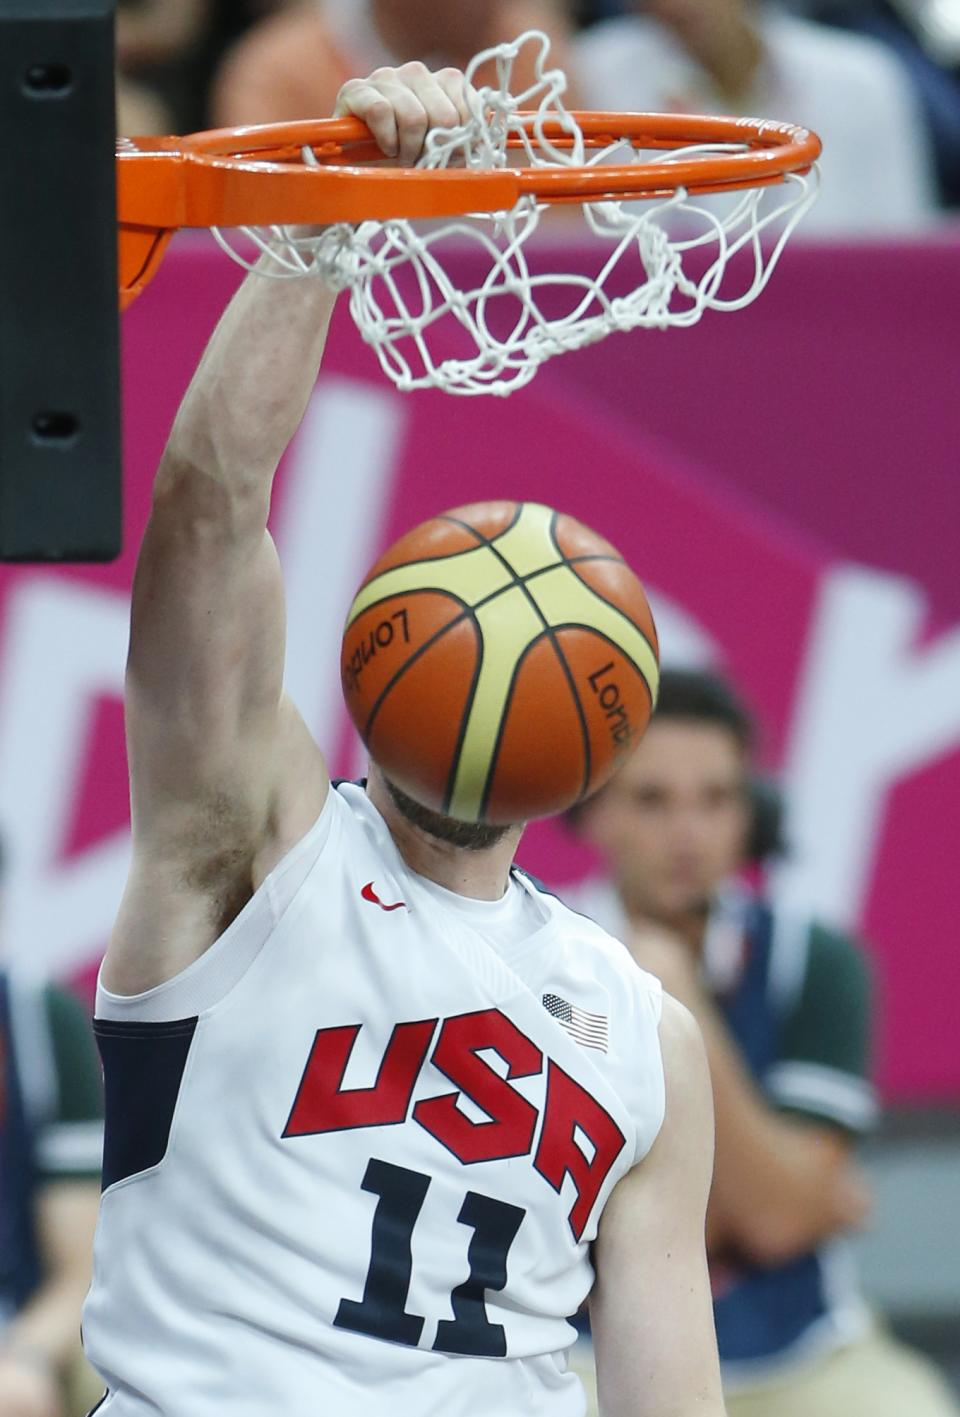 USA's Kevin Love dunks during the first half of a preliminary men's basketball game against France at the 2012 Summer Olympics, Sunday, July 29, 2012, in London. (AP Photo/Jae C. Hong)